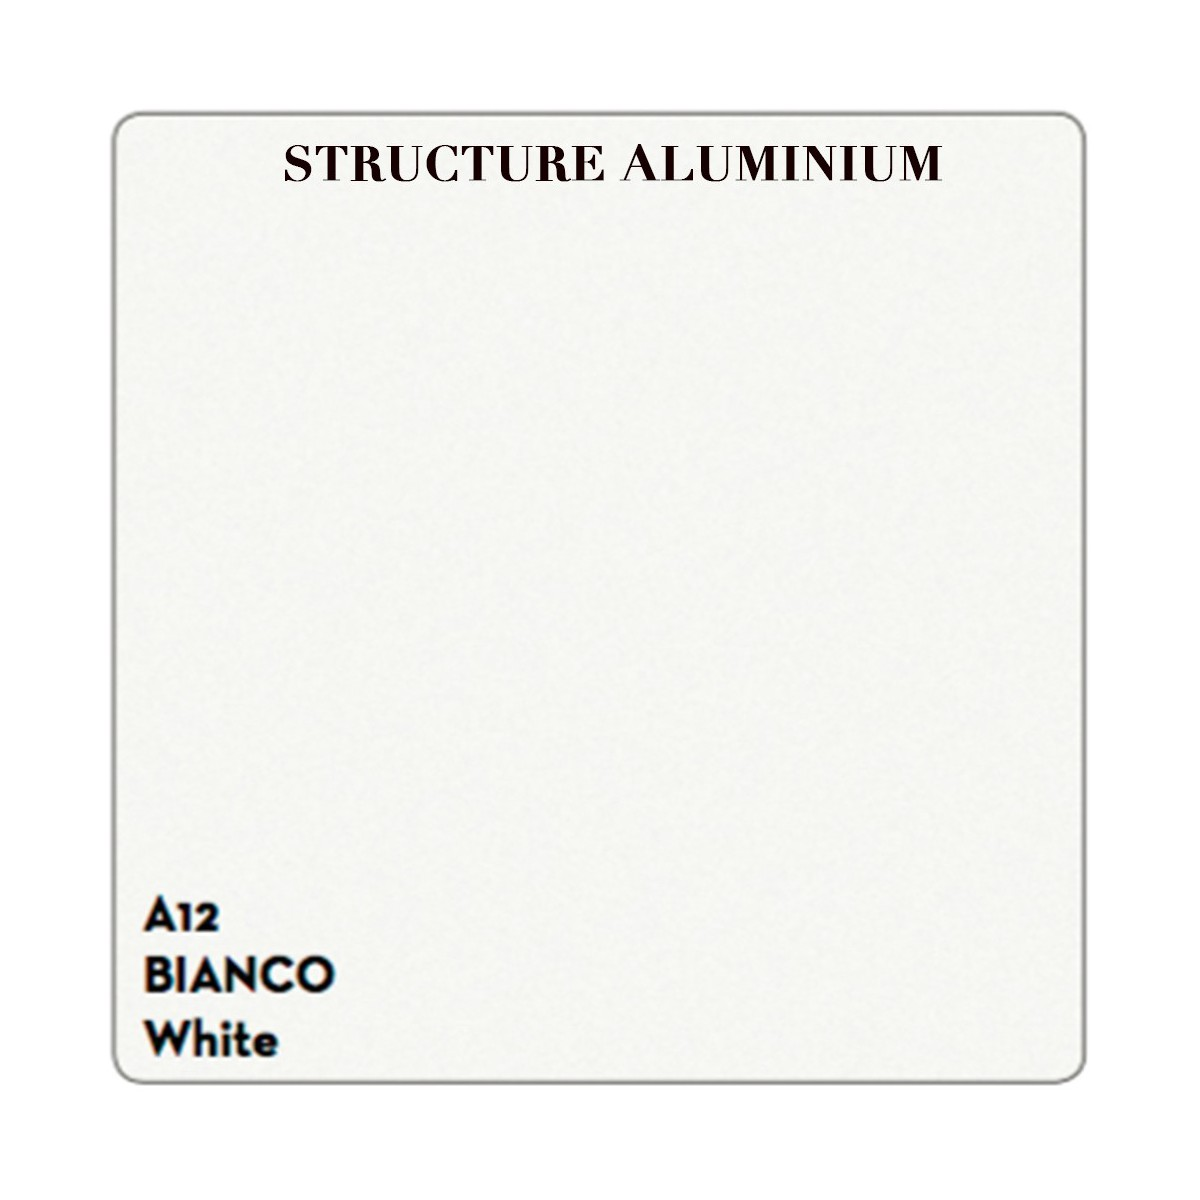 Banquette Design En Teck Et Aluminium Design Sign E Talenti # Banc De Table Blanc